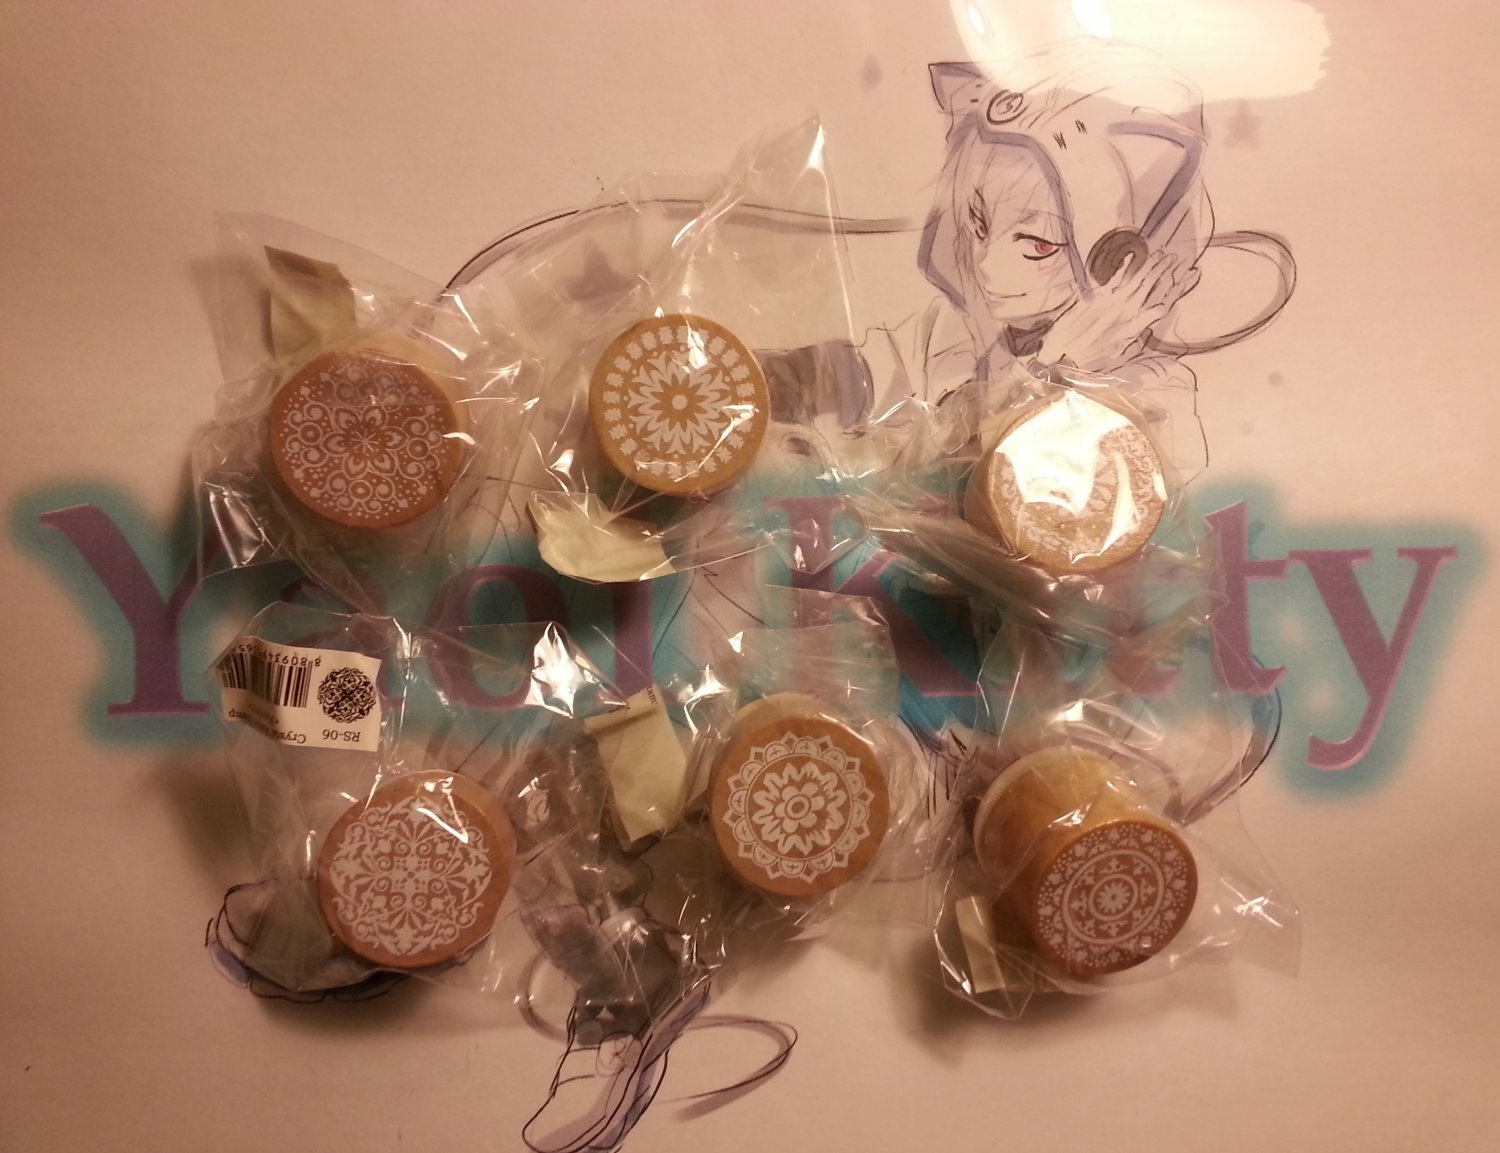 Rubber Stamps - Floral Patterns & Wishes Sentiments Words